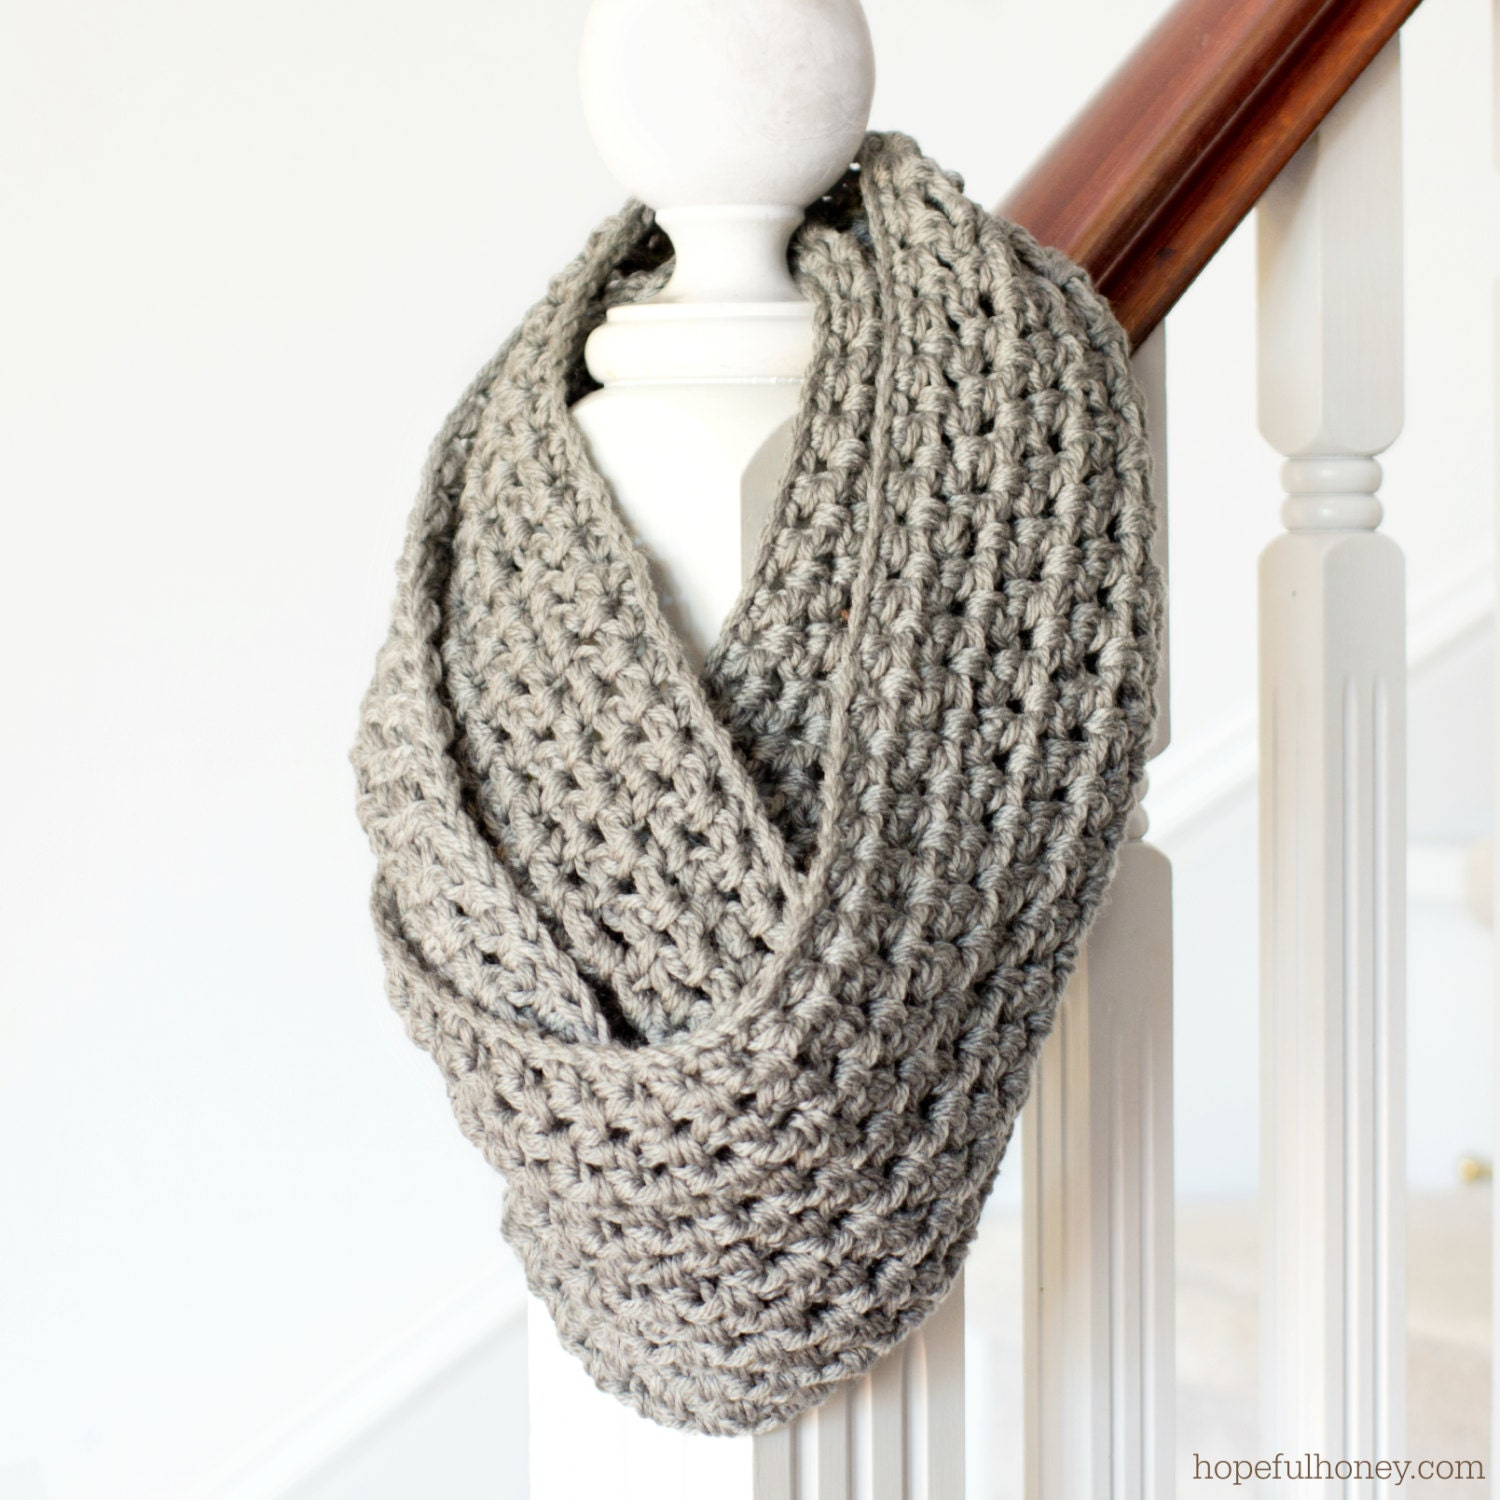 Nov 29, · This pattern for the chunky infinity scarf should work up really fast because of the yarn recommendations, should you chose them. This is a great beginner project because the larger yarn can be easier to work with.5/5(2).